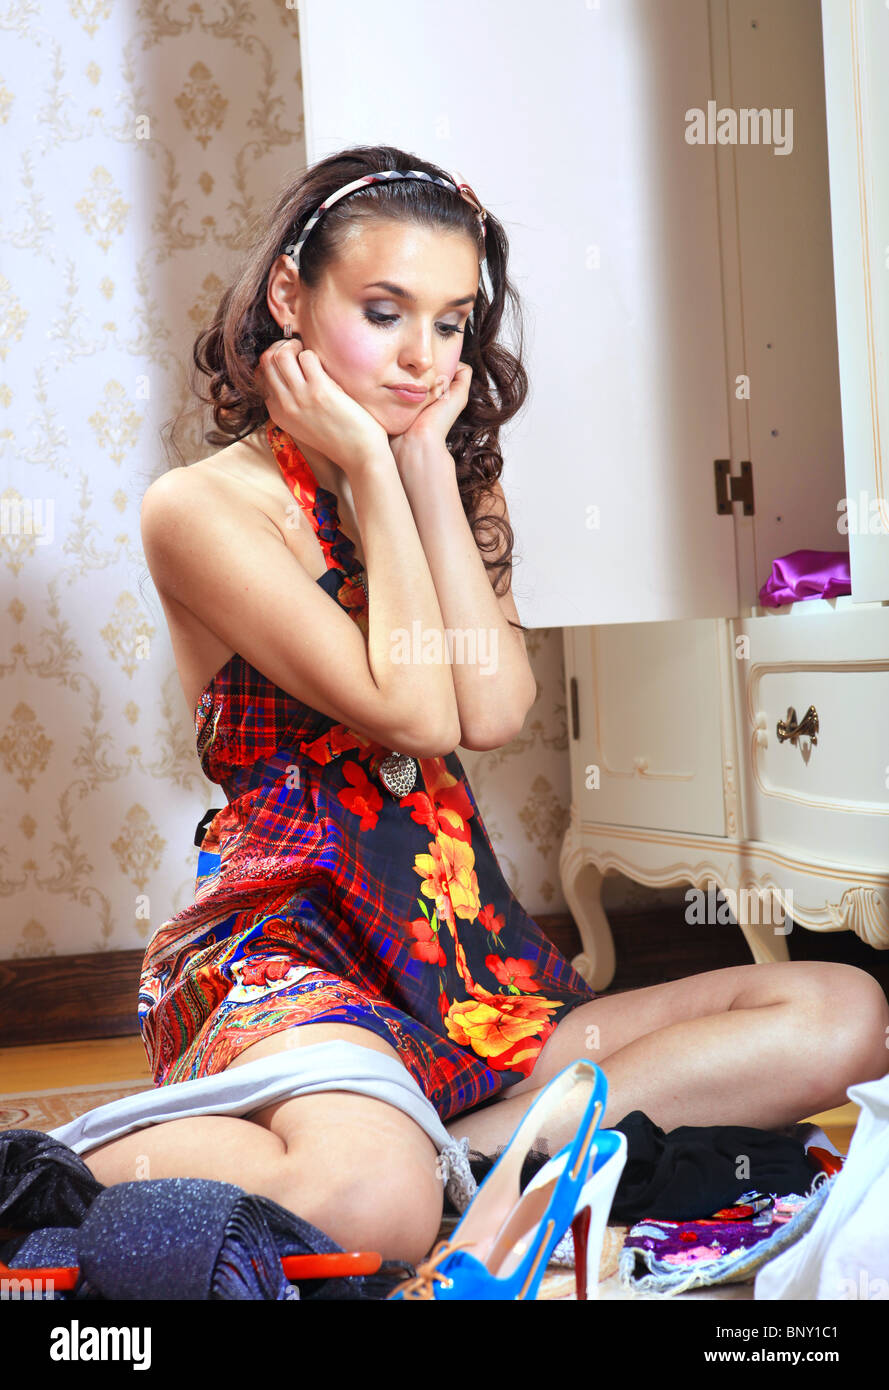 beautiful young woman don't know what to wear - Stock Image